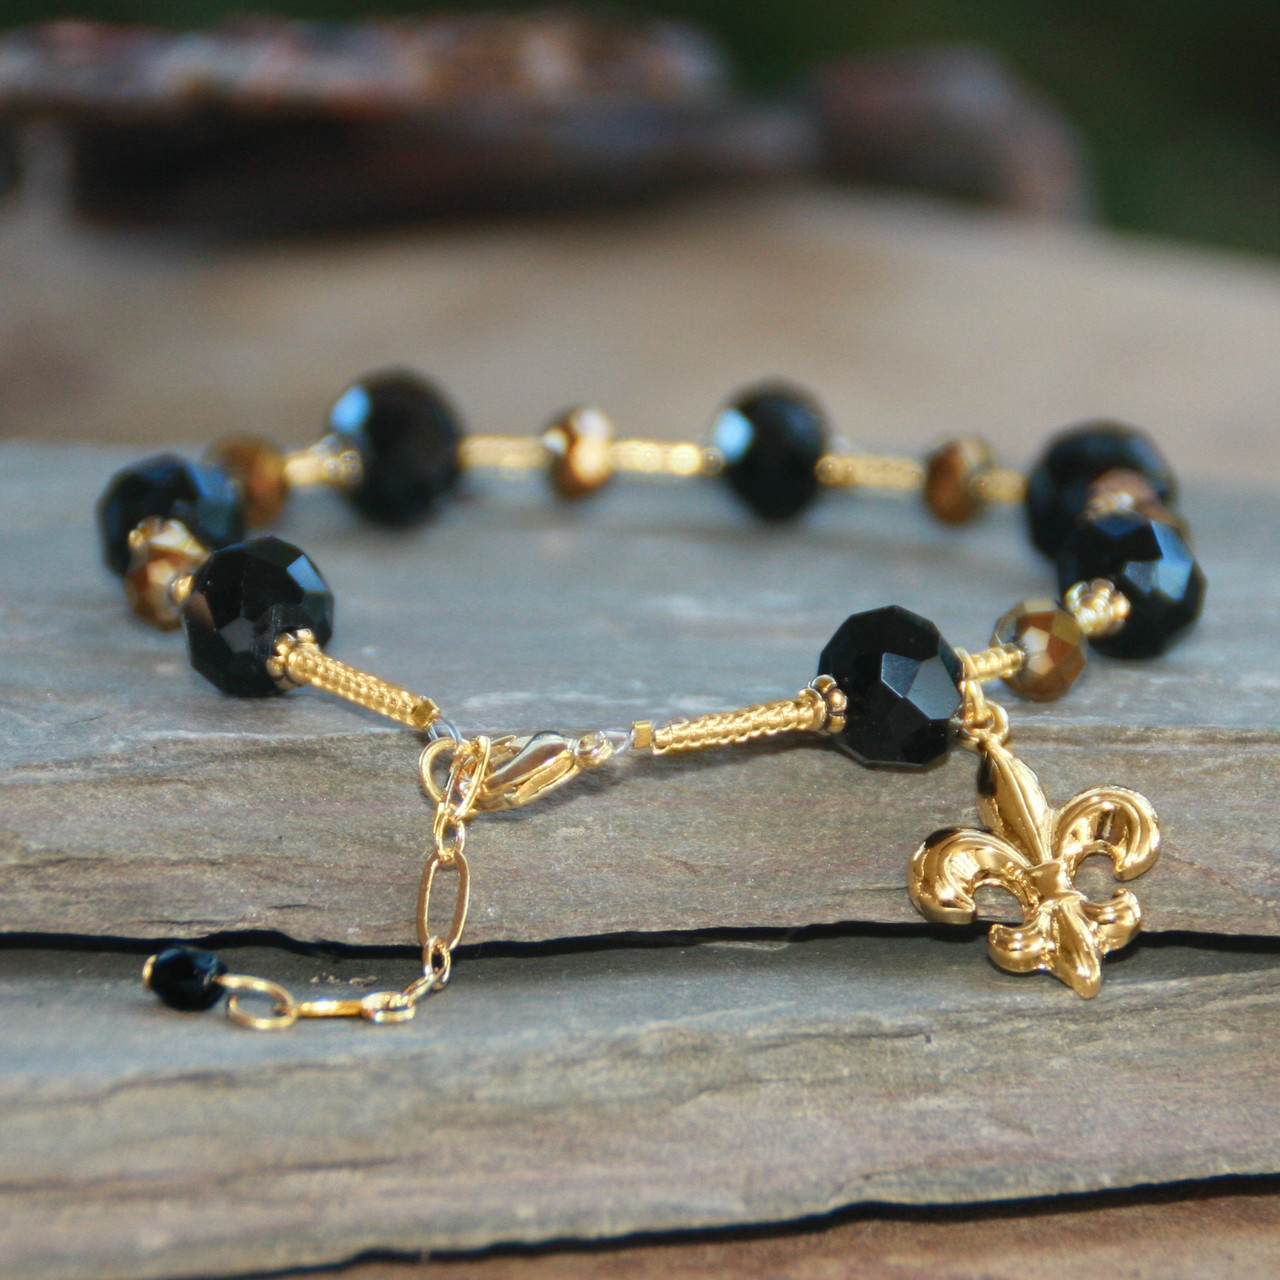 NOST-10  Timeless Saints Bracelet with Extension for Larger wrists